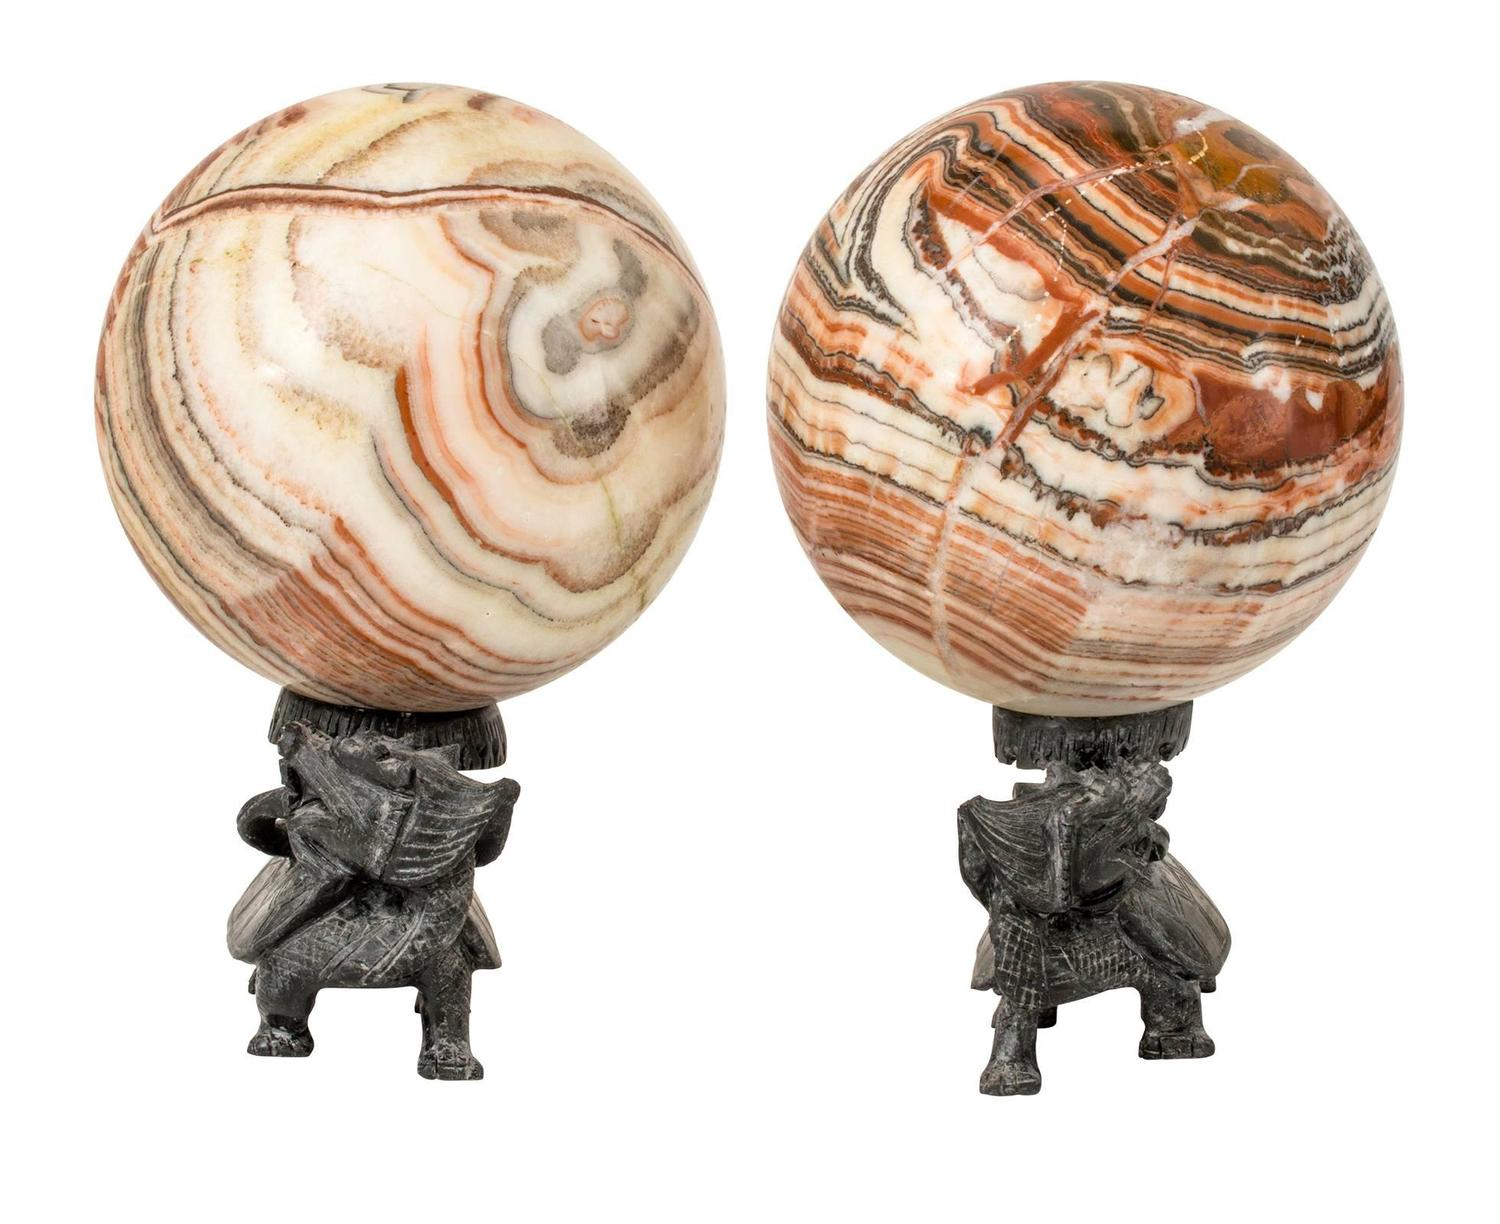 Pair of large marble specimen spheres on stands for sale